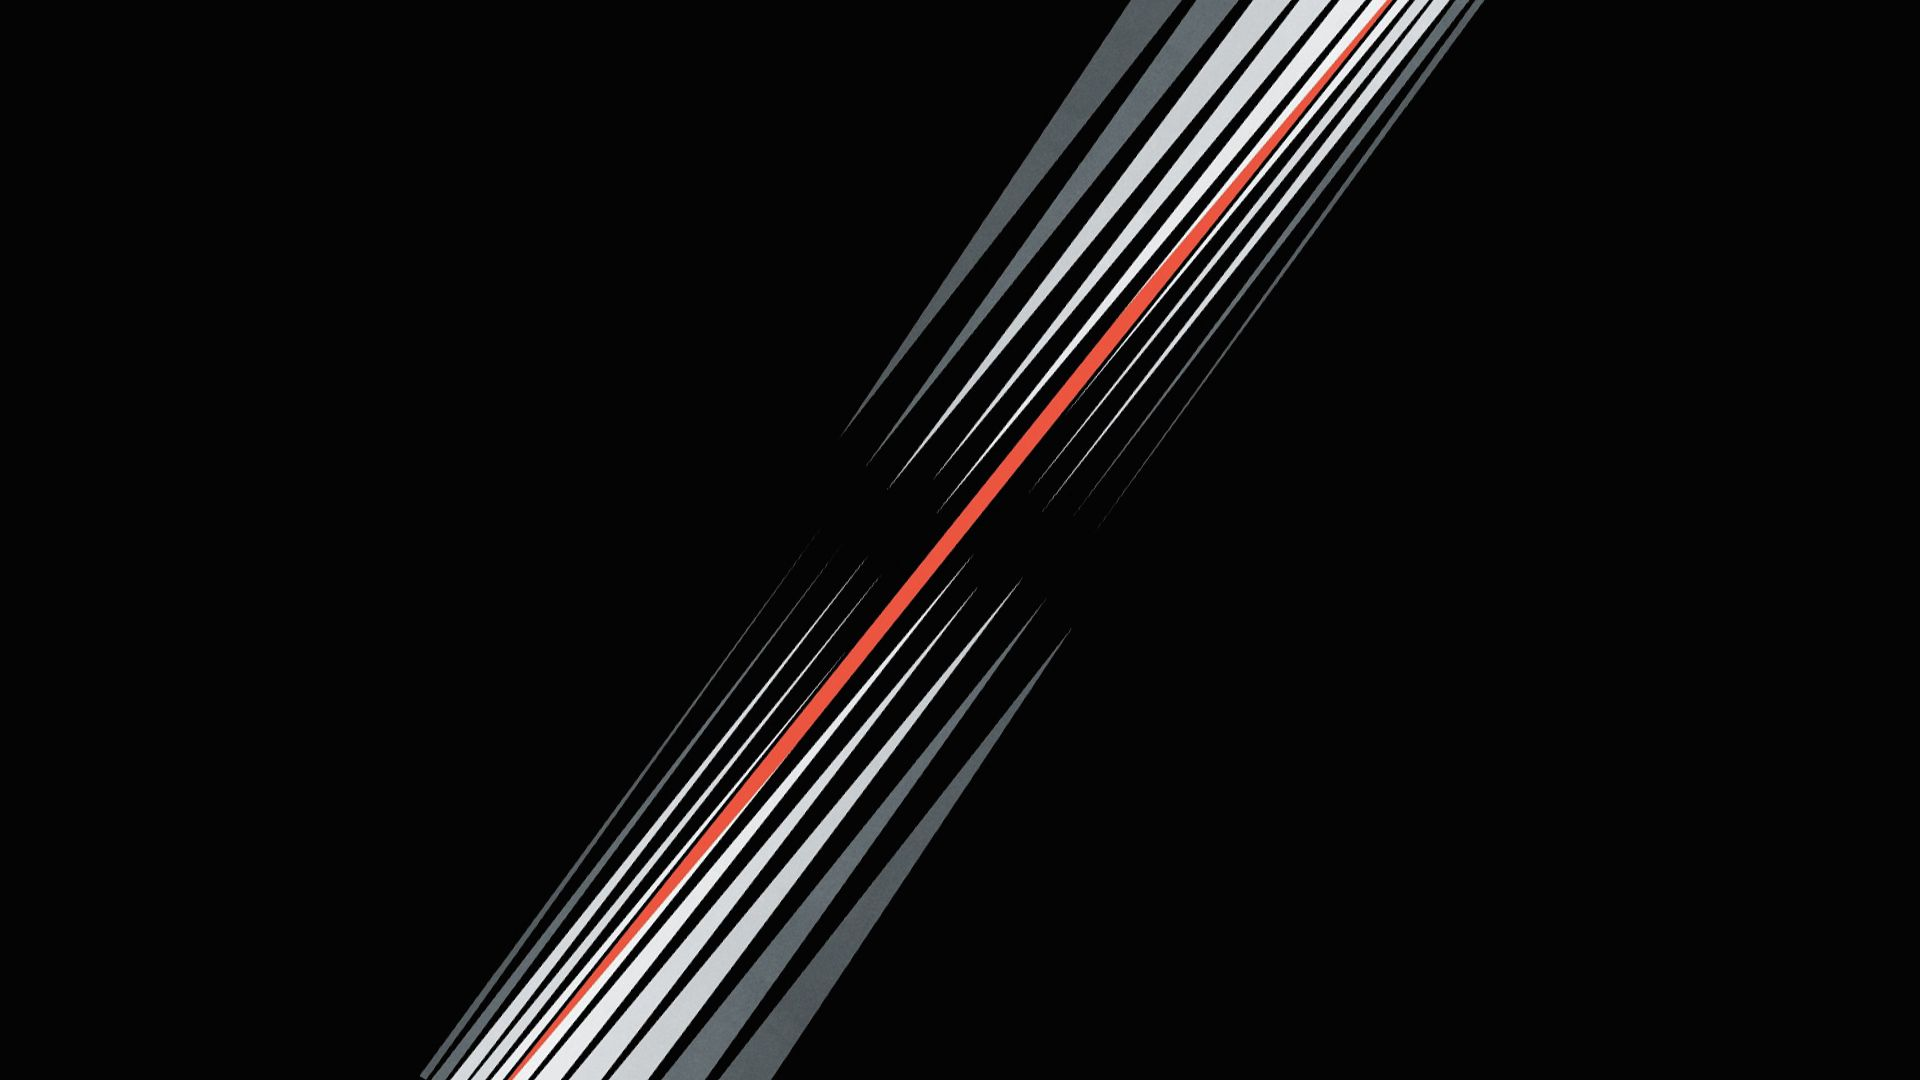 98261 download wallpaper Abstract, Lines, Dark Background, Intermittent screensavers and pictures for free